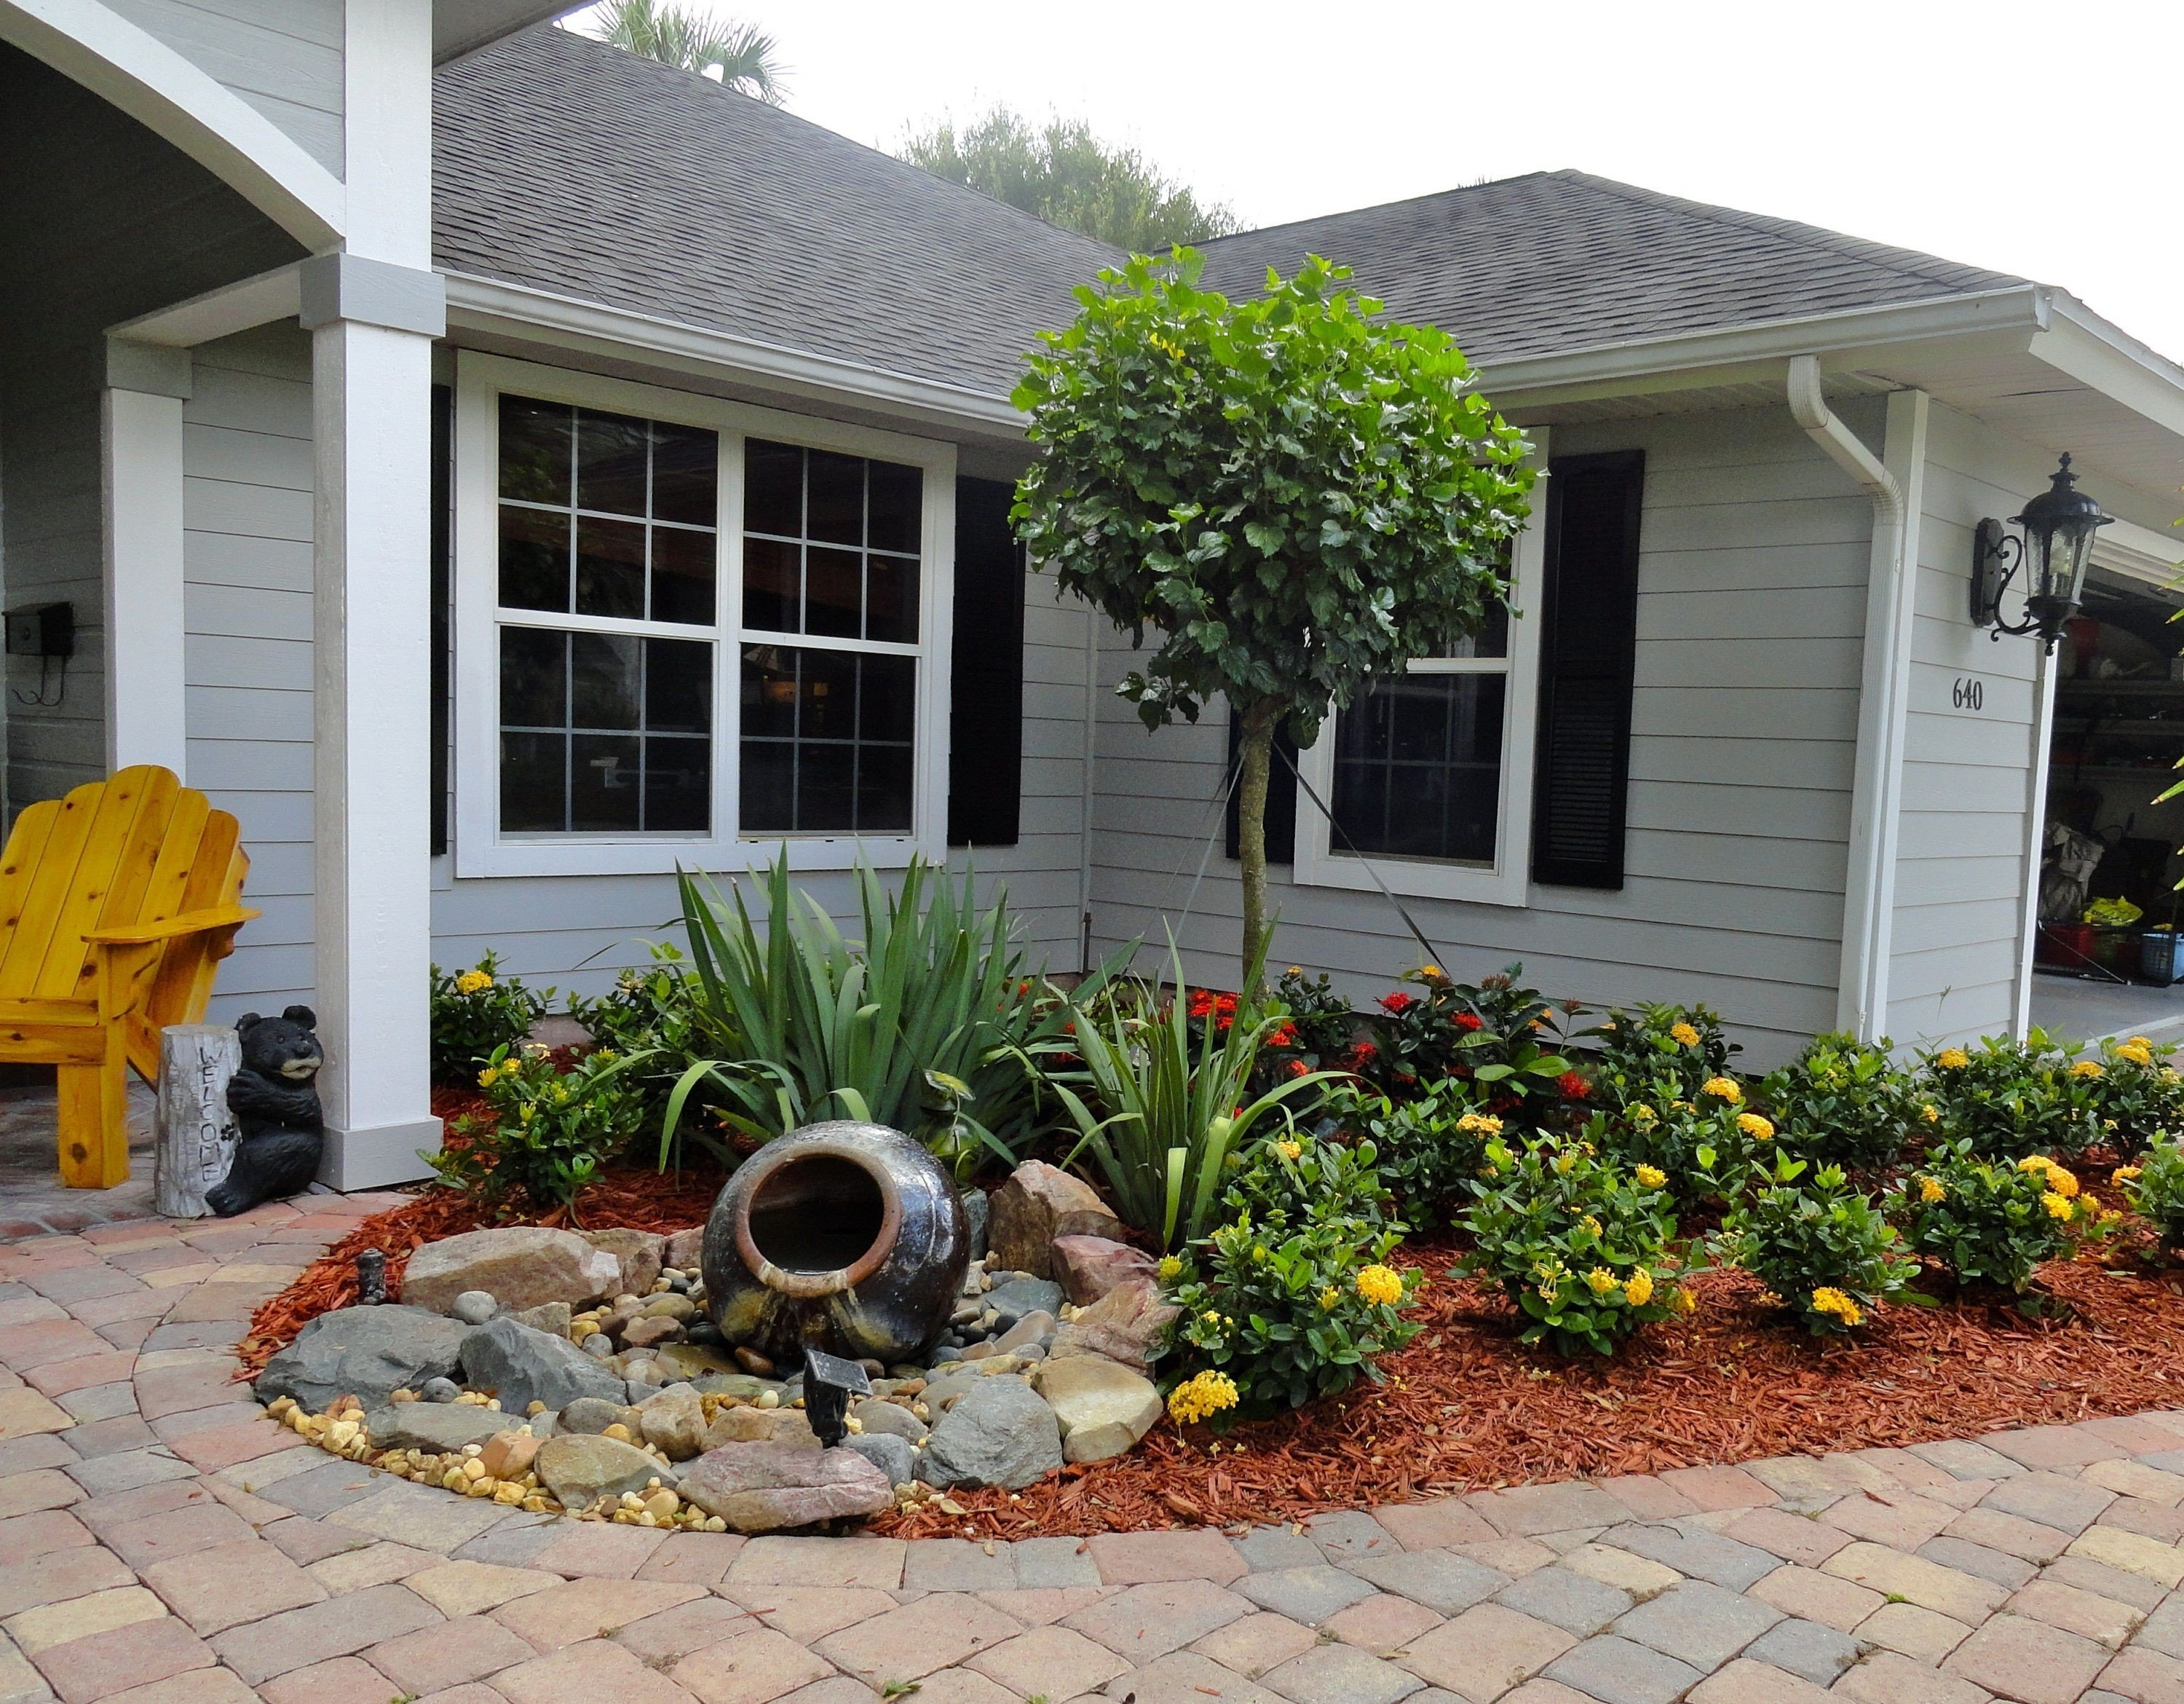 10 Nice Front Yard Landscape Design Ideas landscape design ideas for front yards small front yard landscape